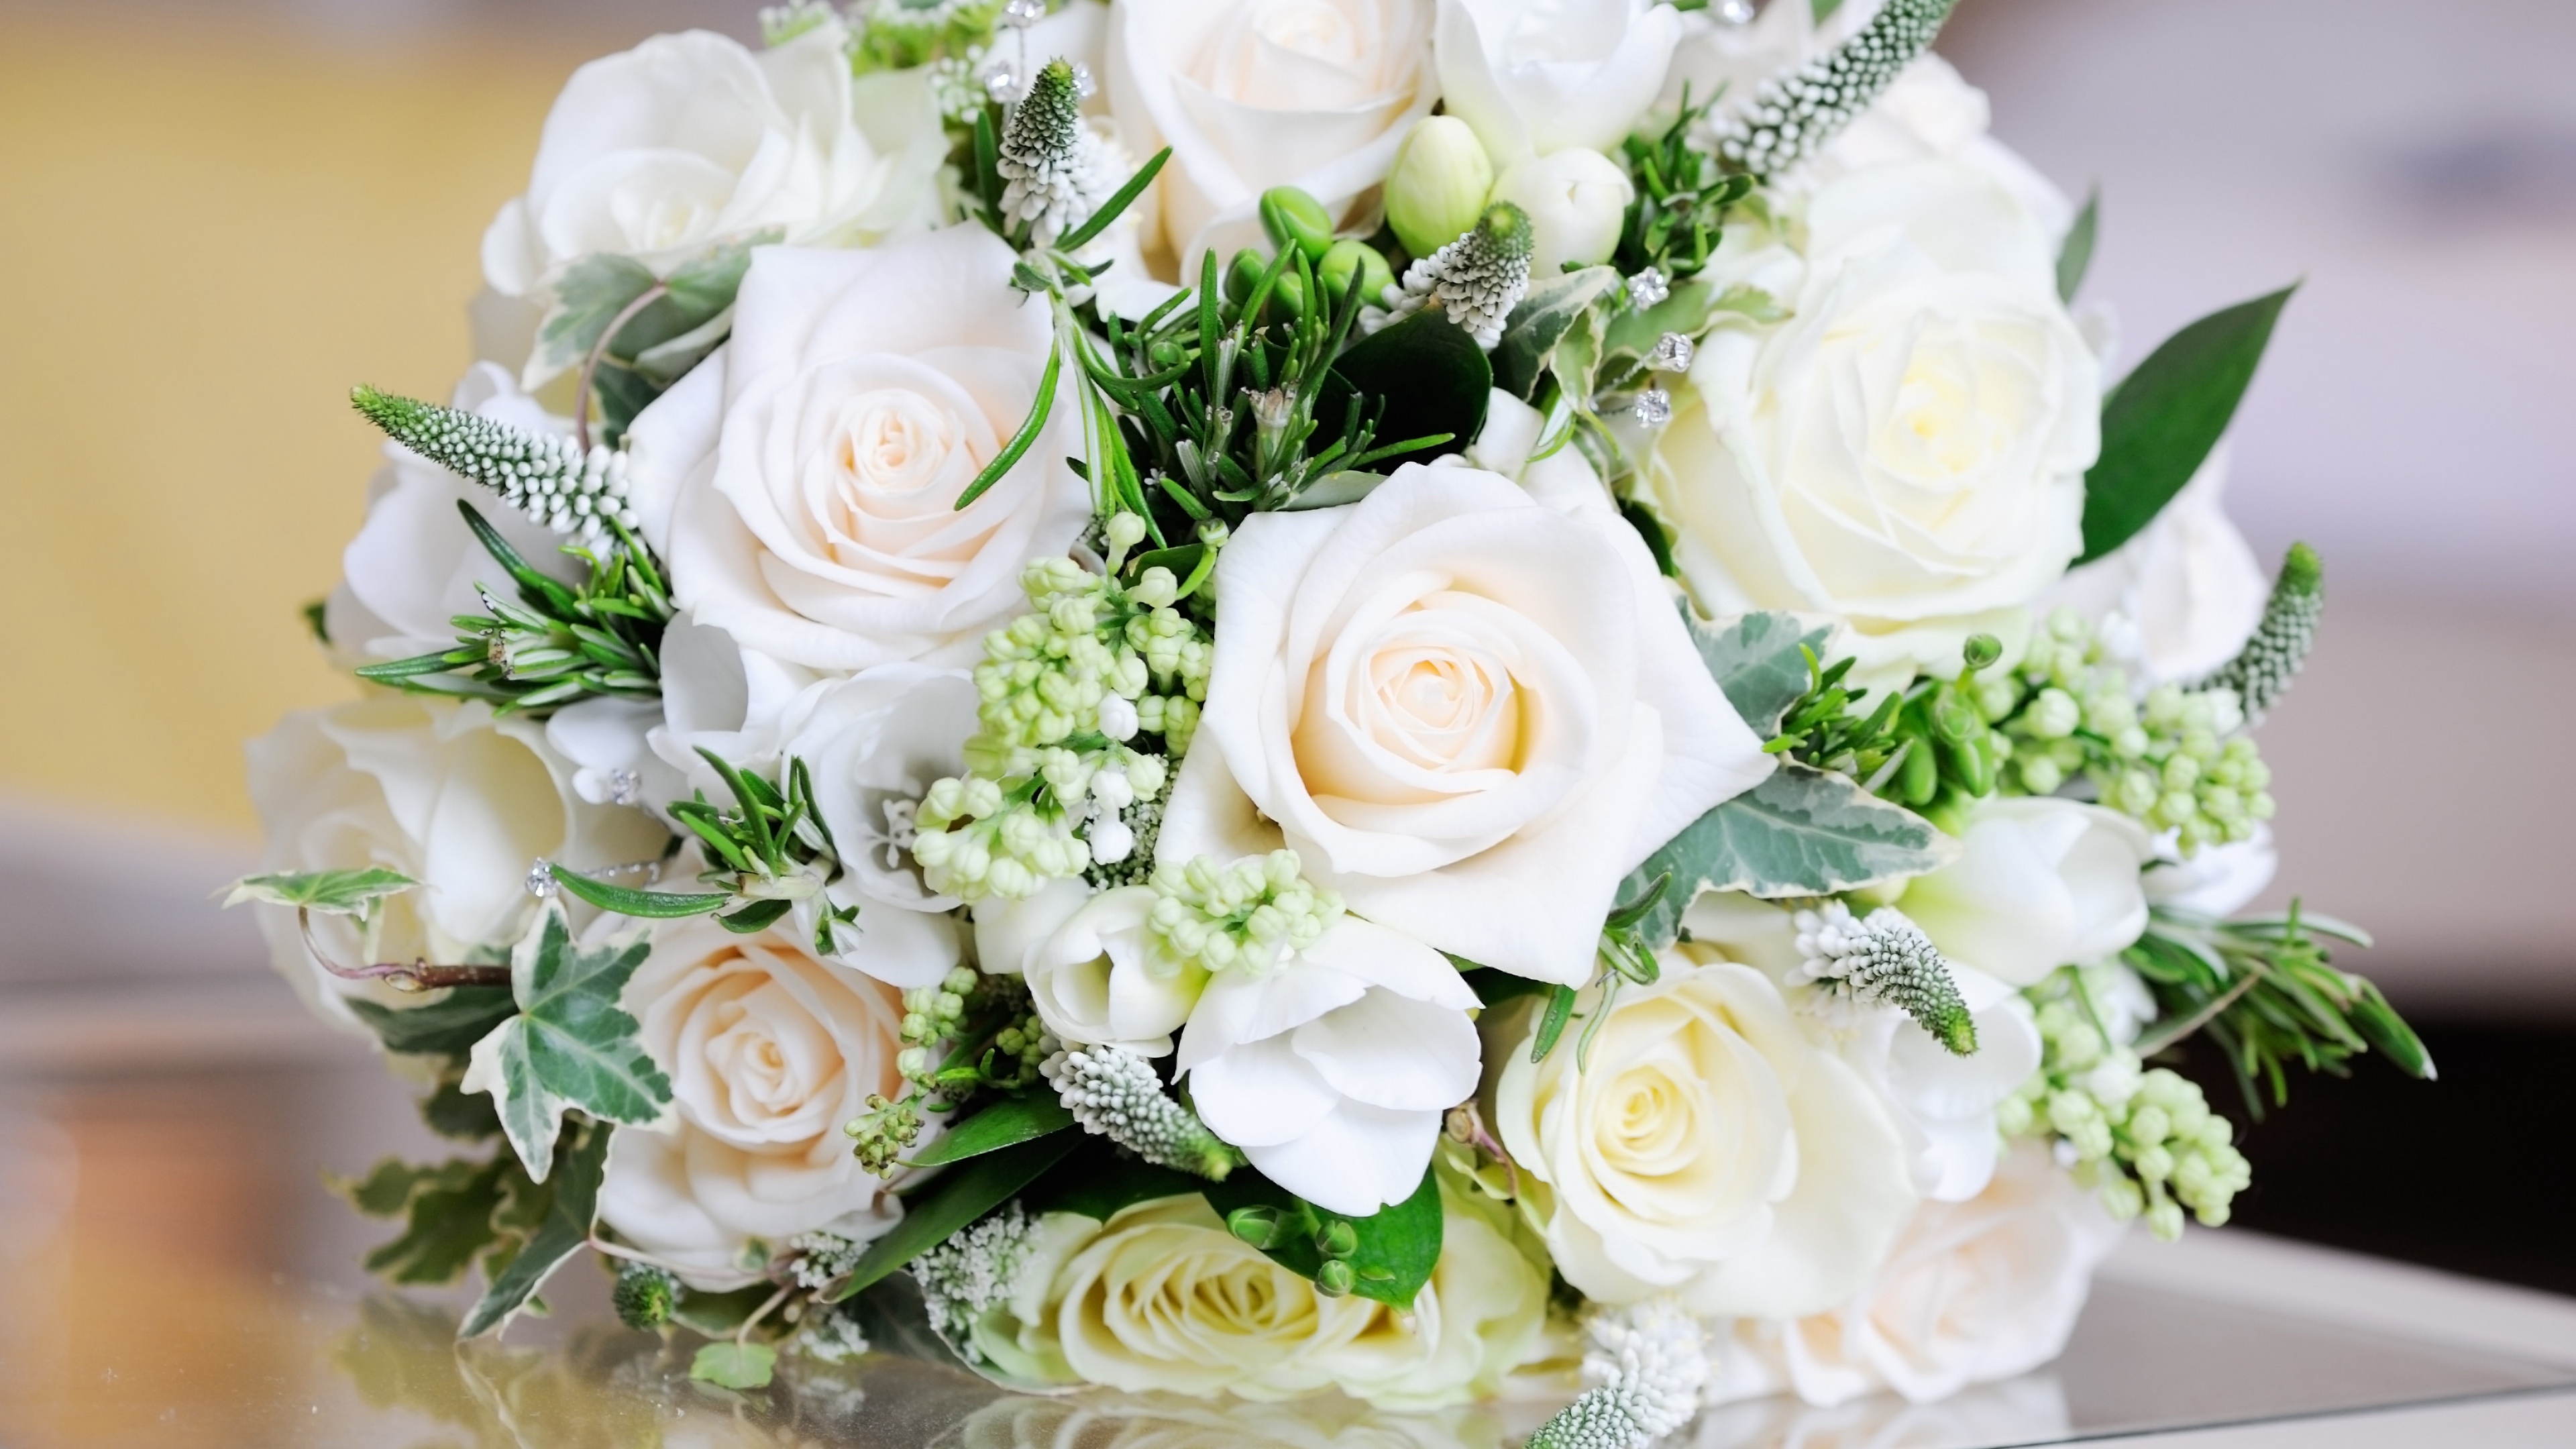 roses bouquet leaves flowers white table decoration 4k 1540065141 - roses, bouquet, leaves, flowers, white, table, decoration 4k - Roses, Leaves, Bouquet